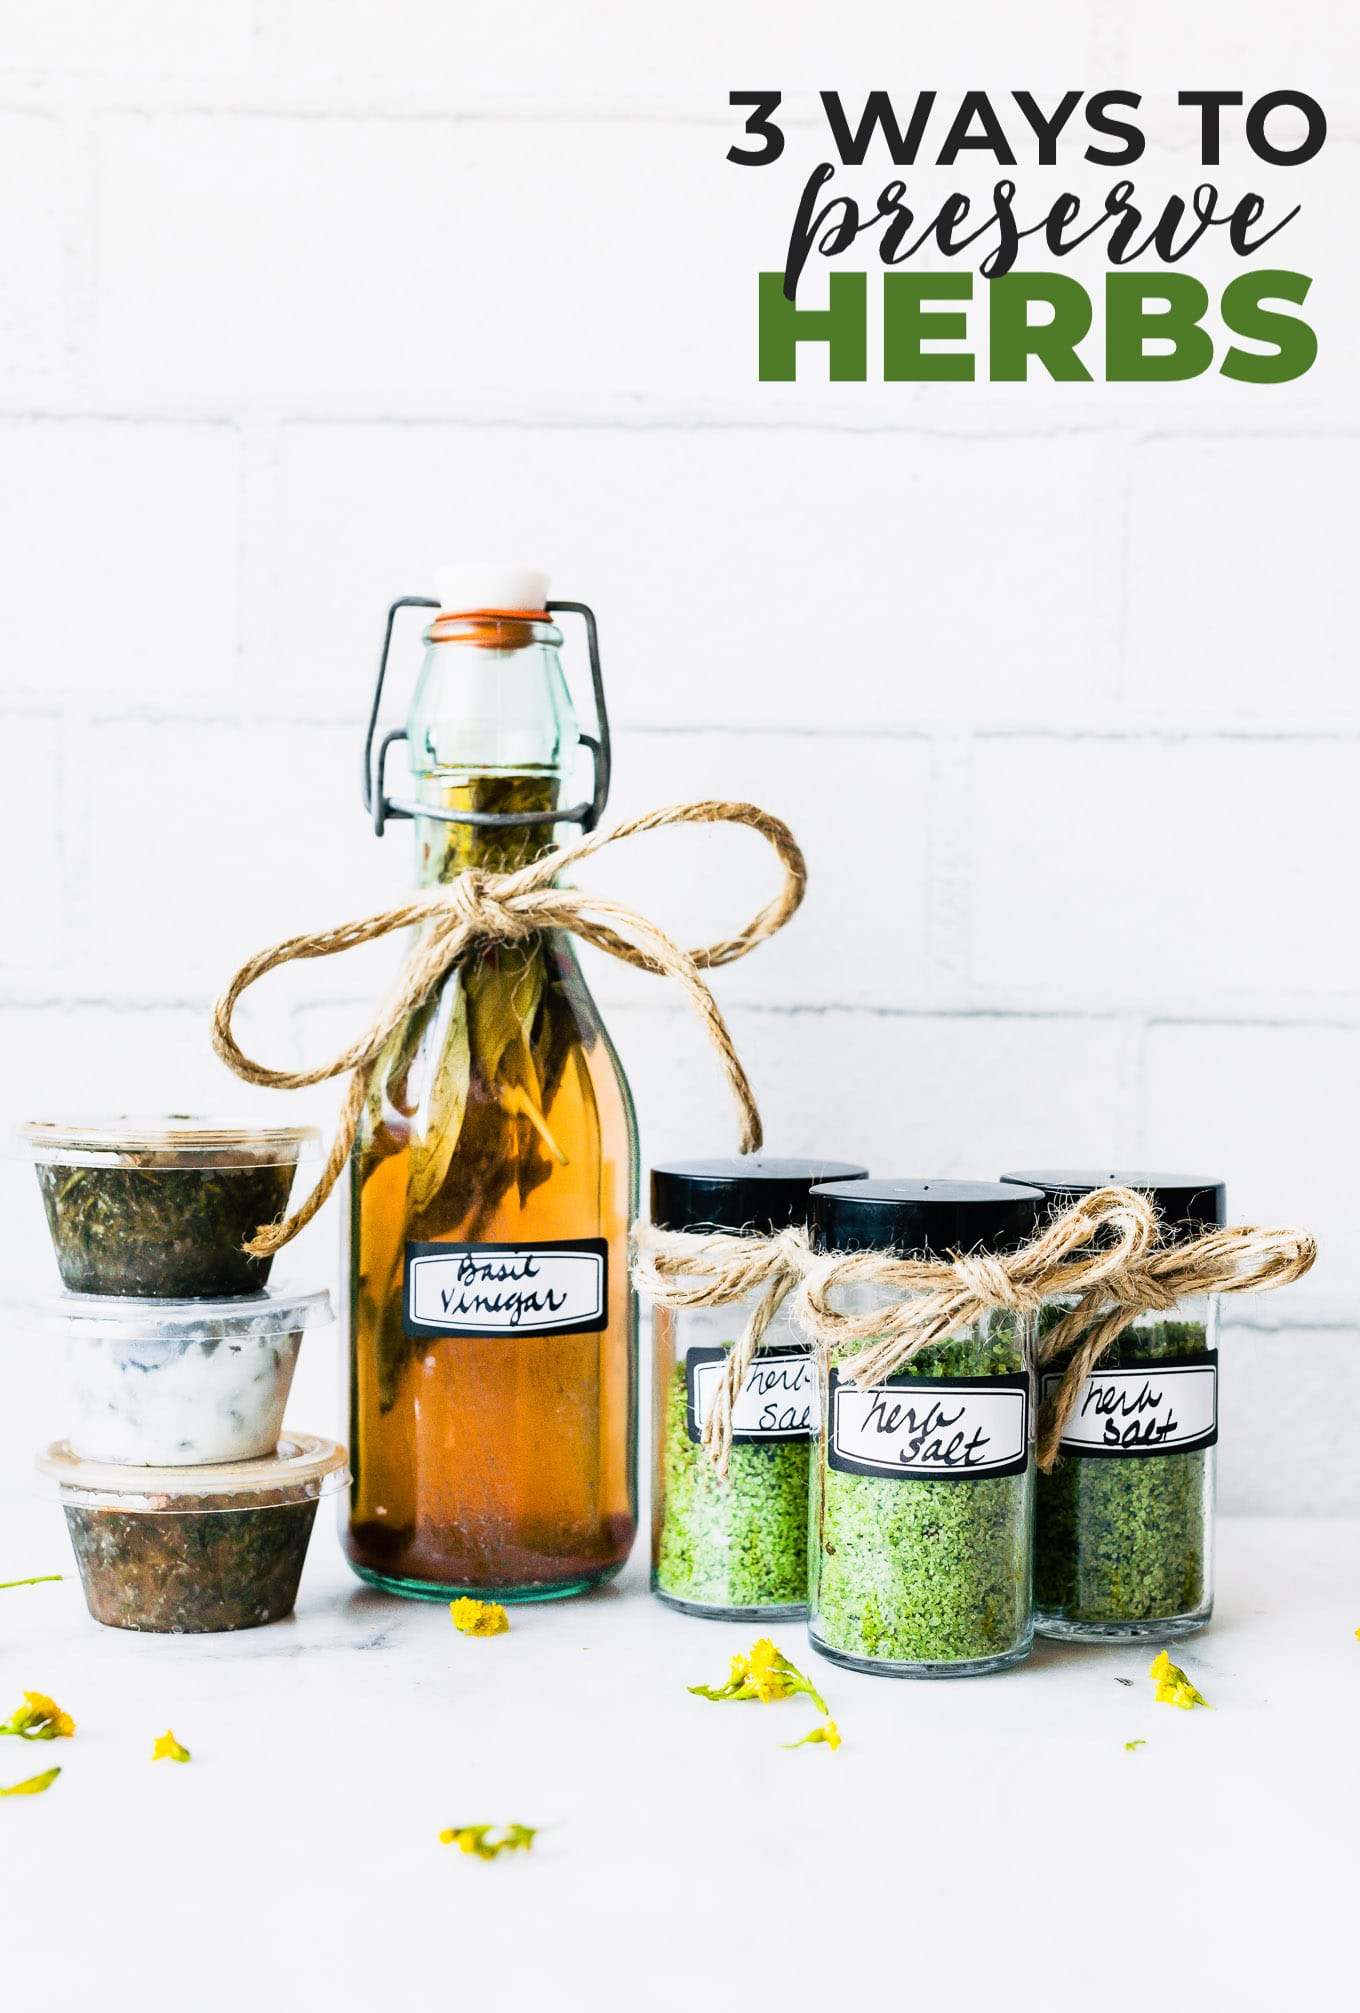 Preserving herbs is easy! Learn 3 ways to preserve fresh herbs, including freezing herbs and get recipes for an herbed salt blend and herbed vinegar.